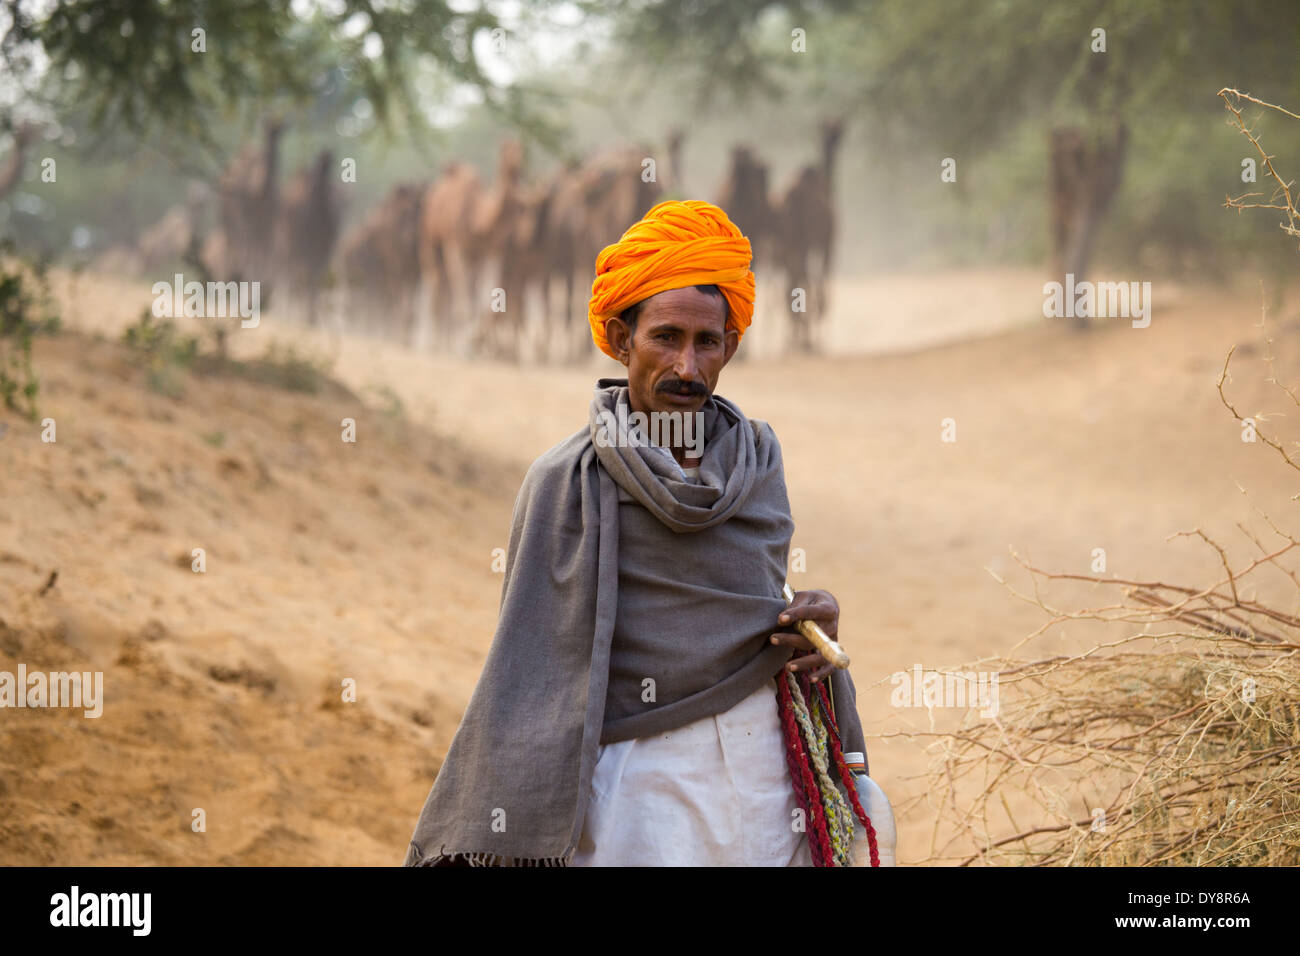 e49dce7ef0d Camel Wearing Hat Stock Photos   Camel Wearing Hat Stock Images - Alamy